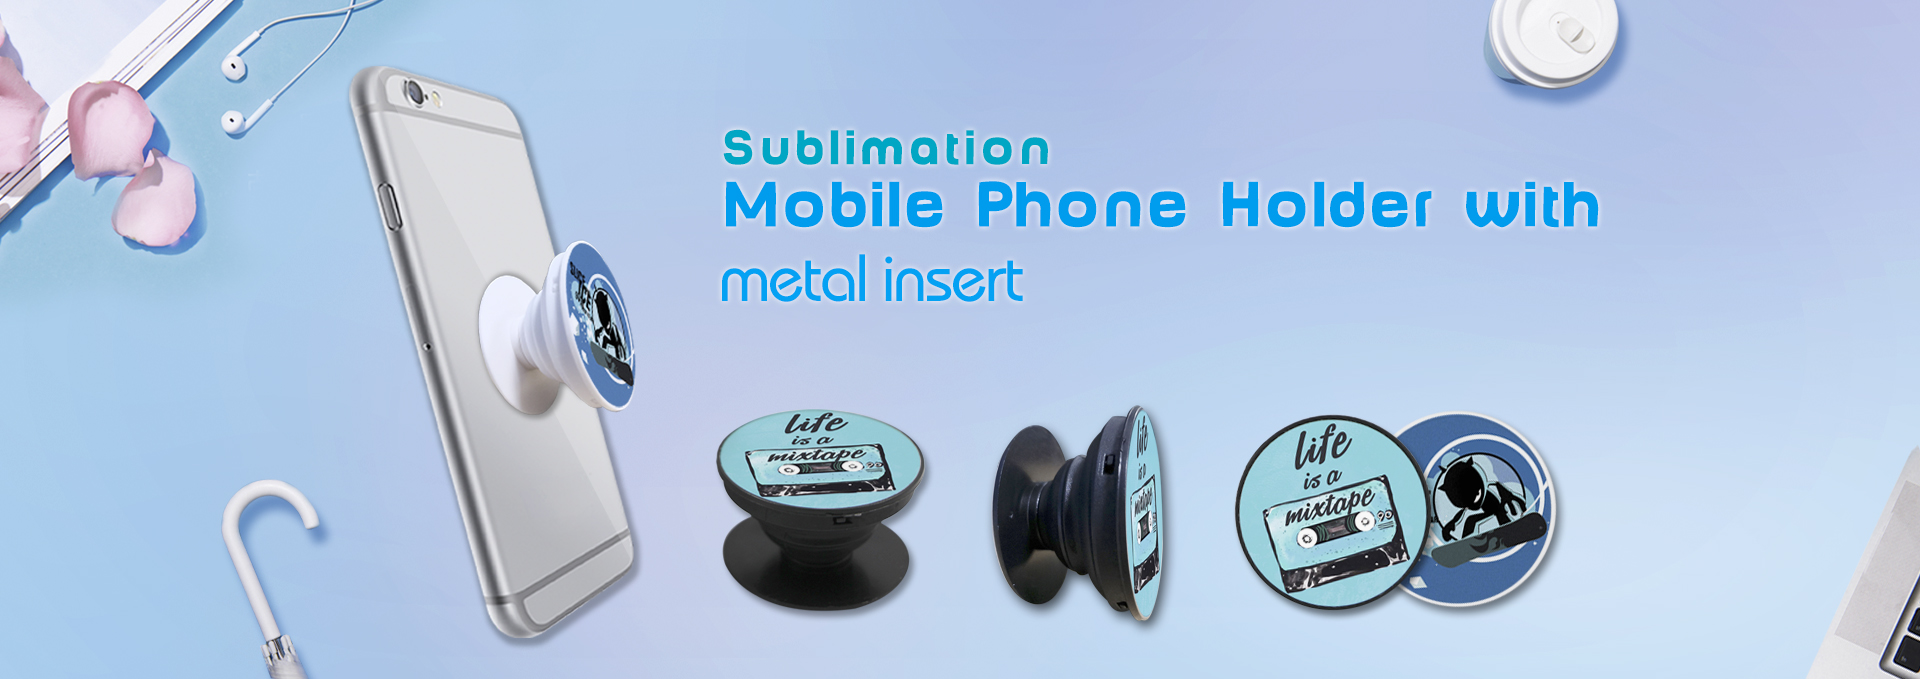 Sublimation Cell Phone Holder with metal insert